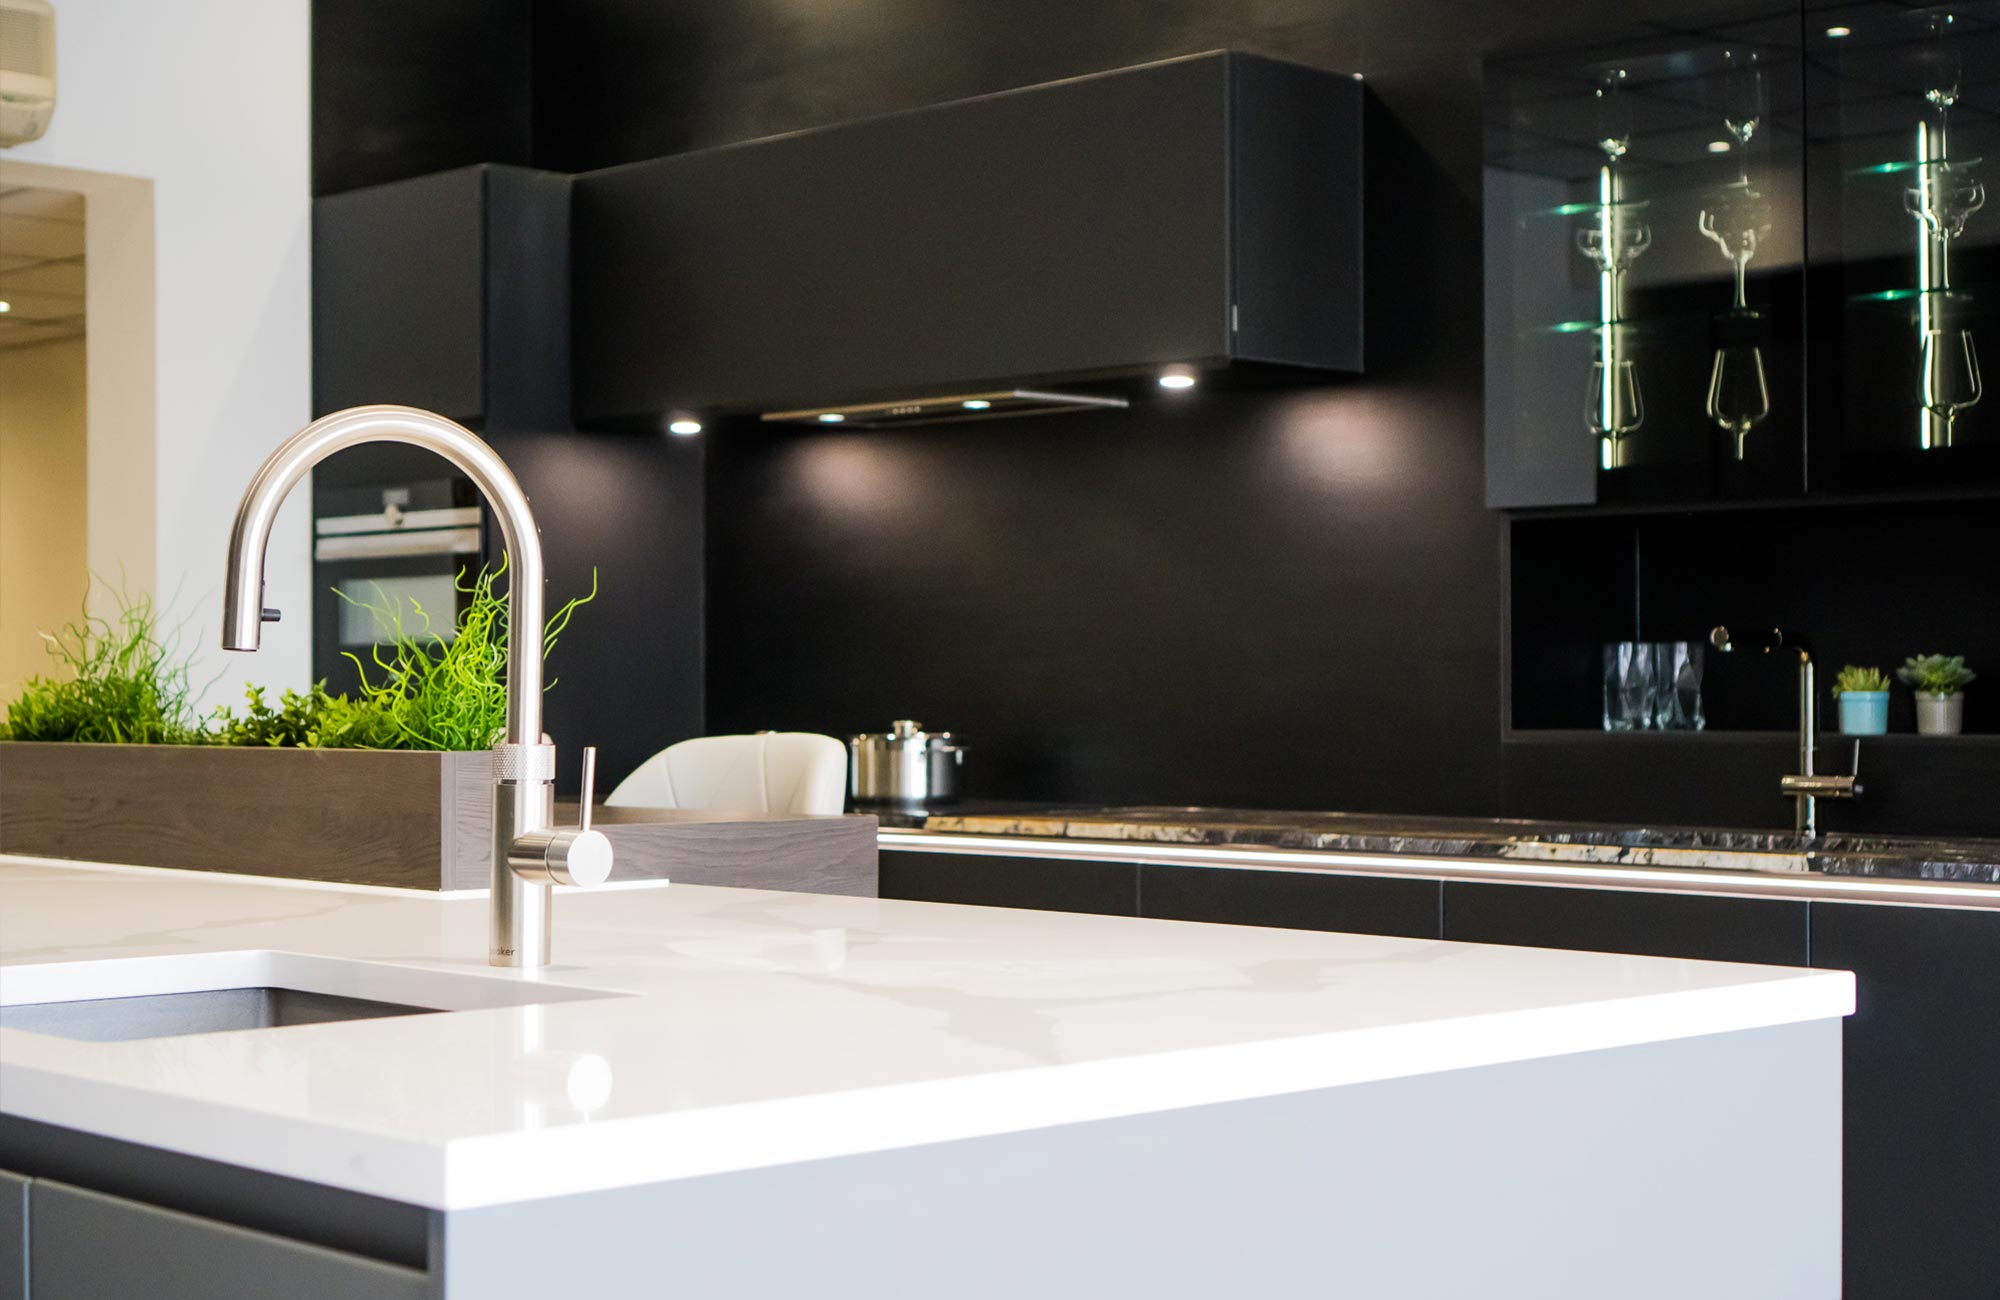 Sidcup kitchens